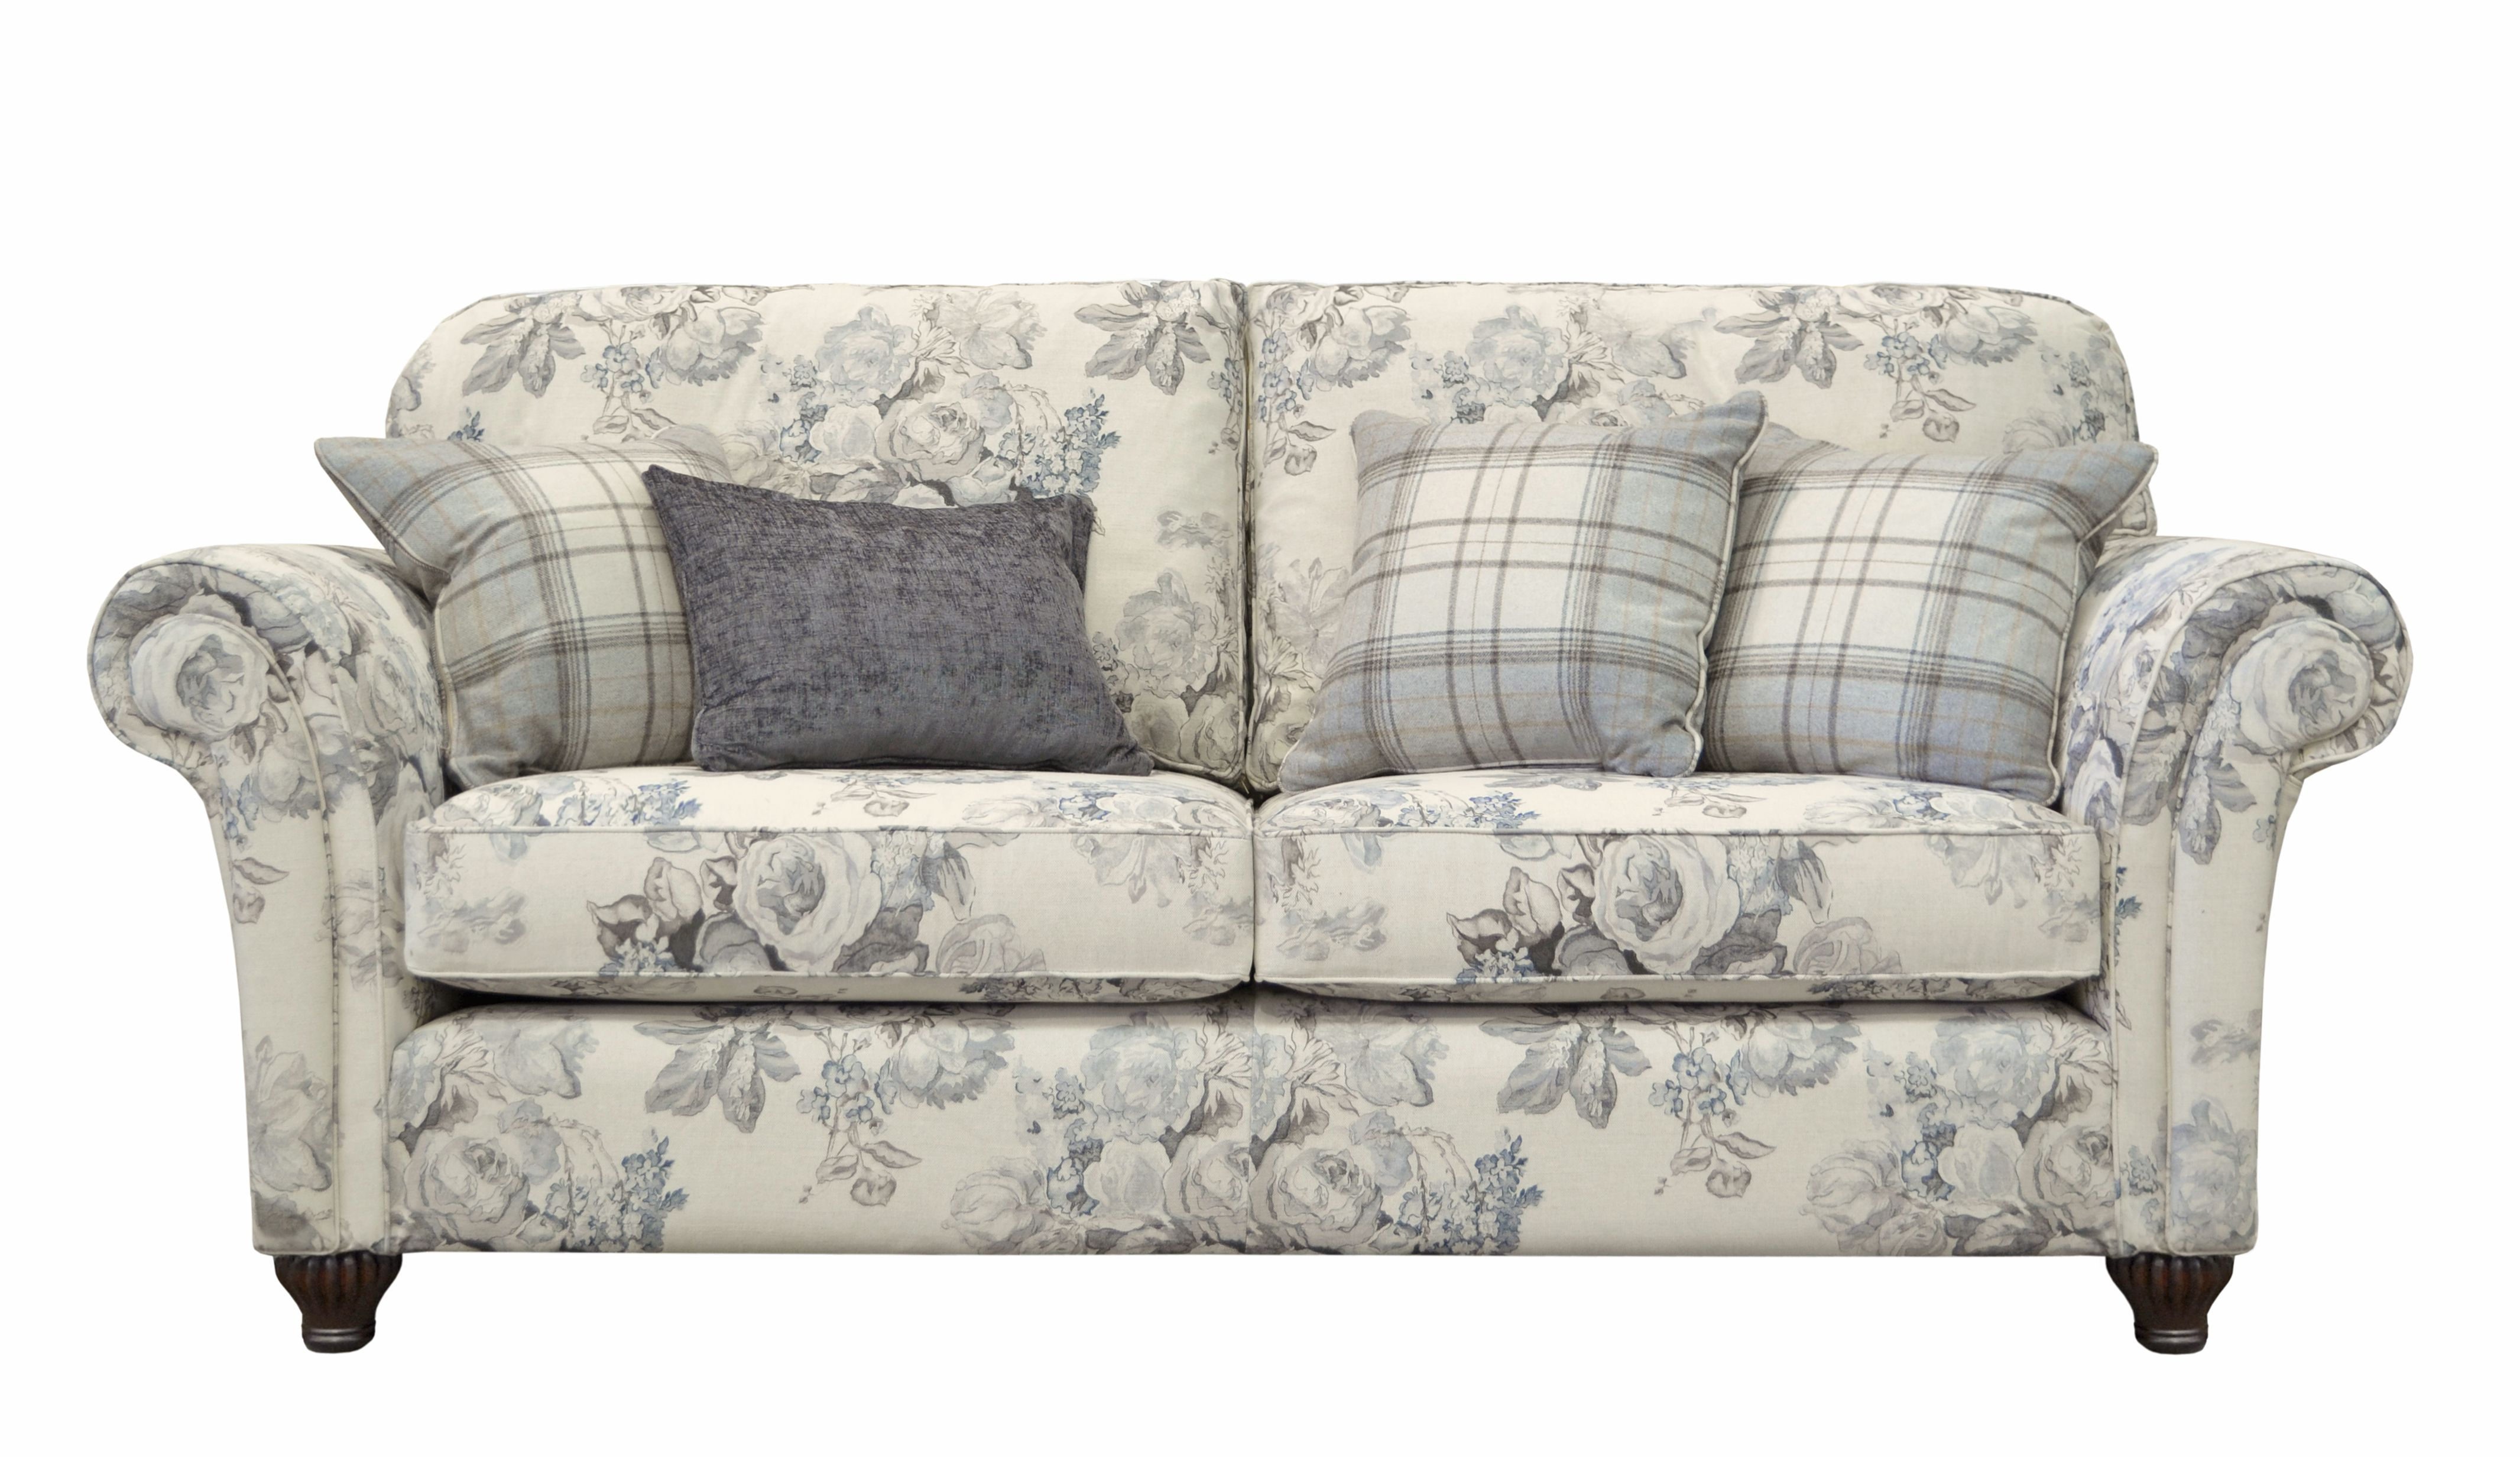 Pinholly Furney On I Love Interior Design! | Pinterest | Sofa Regarding Tate Arm Sofa Chairs (View 9 of 25)